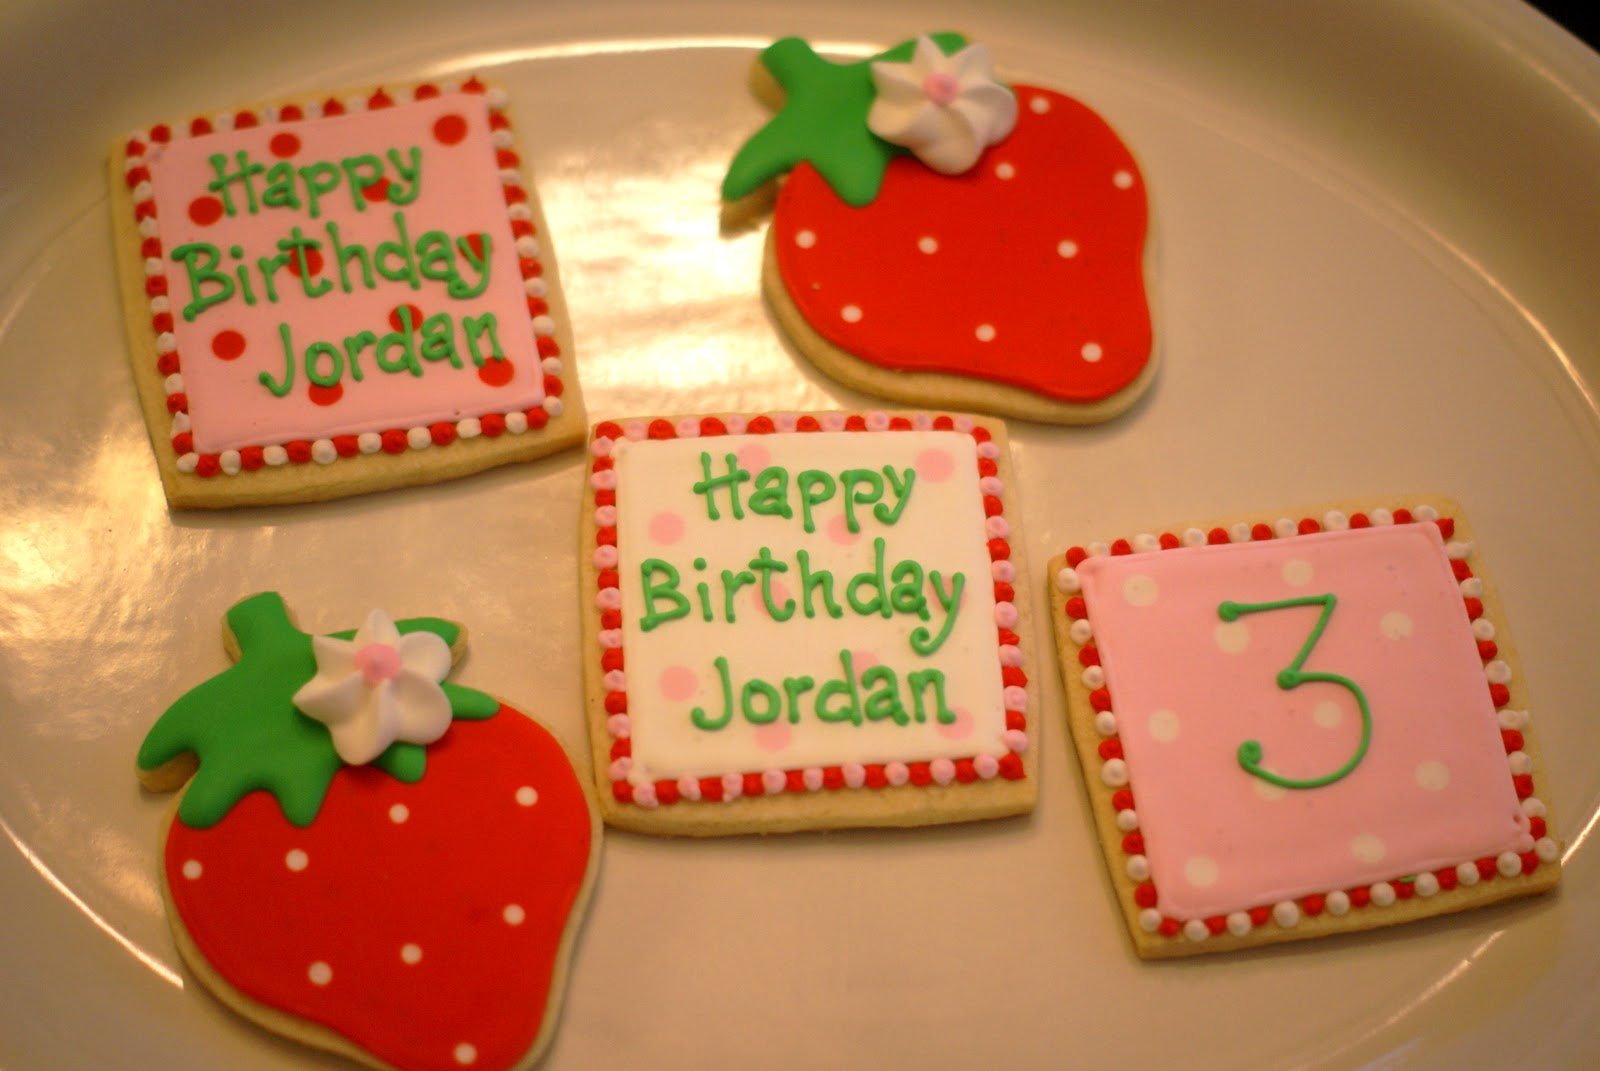 All About the COOKIES: Strawberry Shortcake cookies